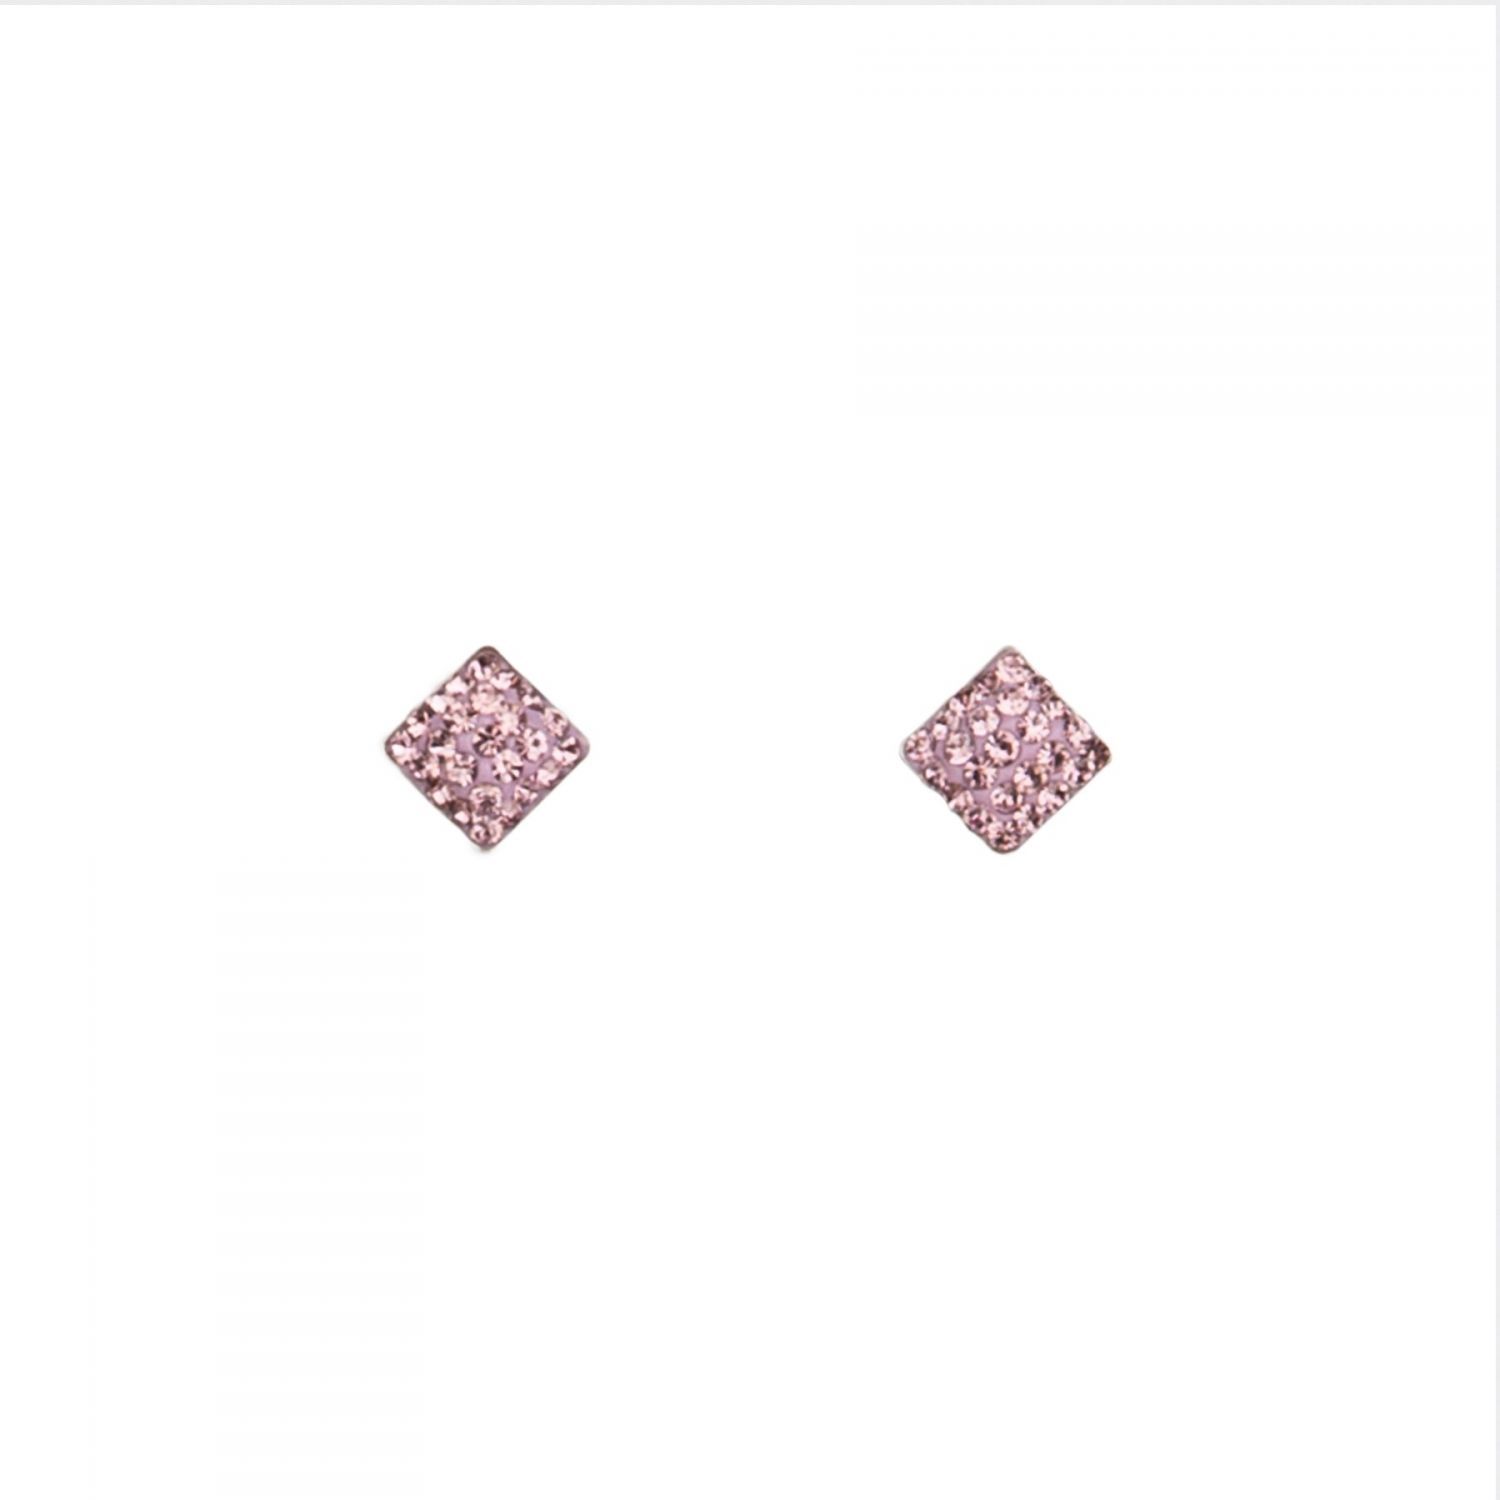 Zirconia Light Mauve silver earrings